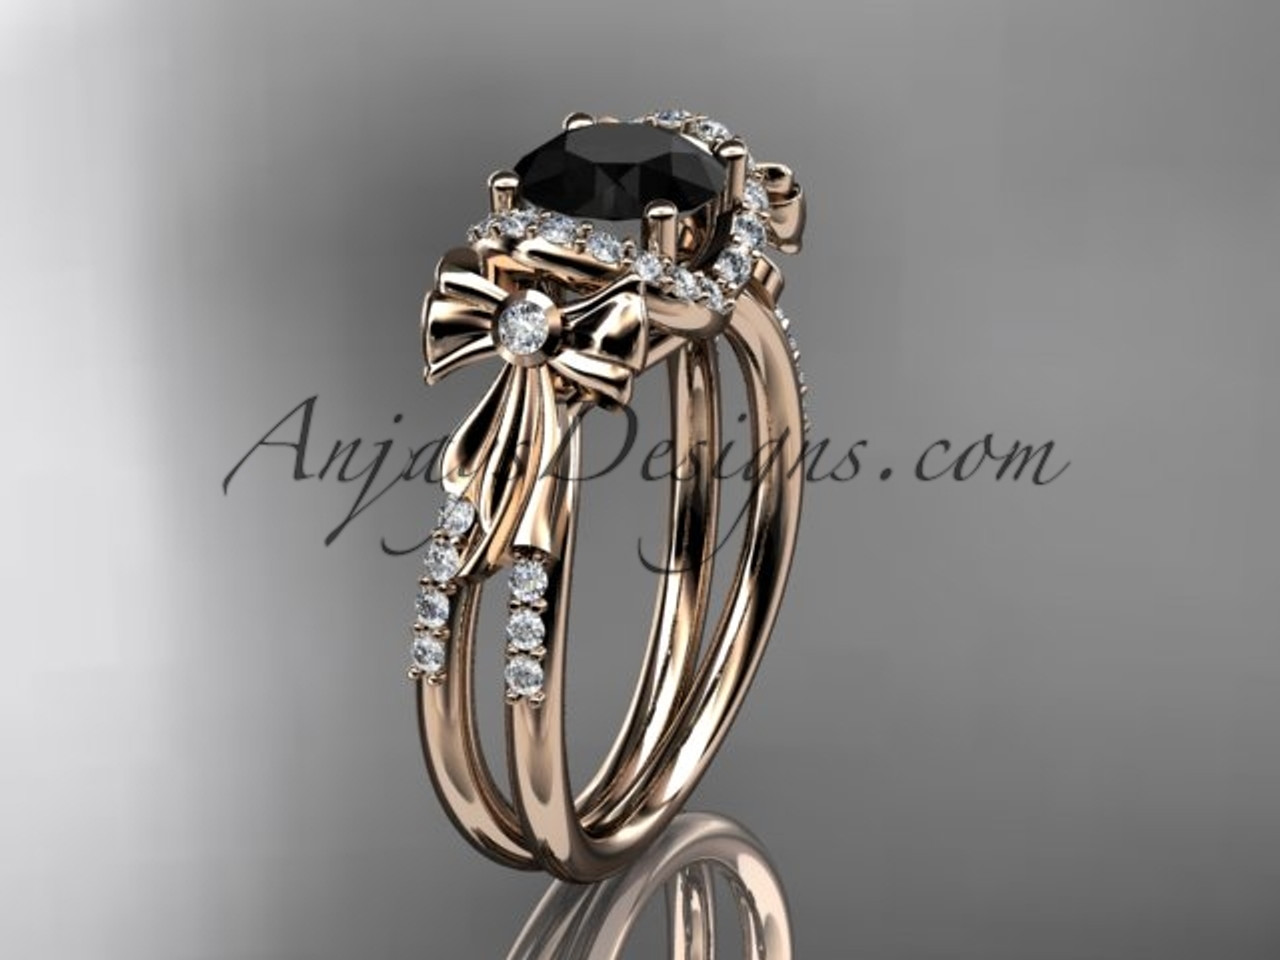 14kt Rose Gold Diamond Unique Engagement Ring, Bow Ring, Wedding Ring With  A Black